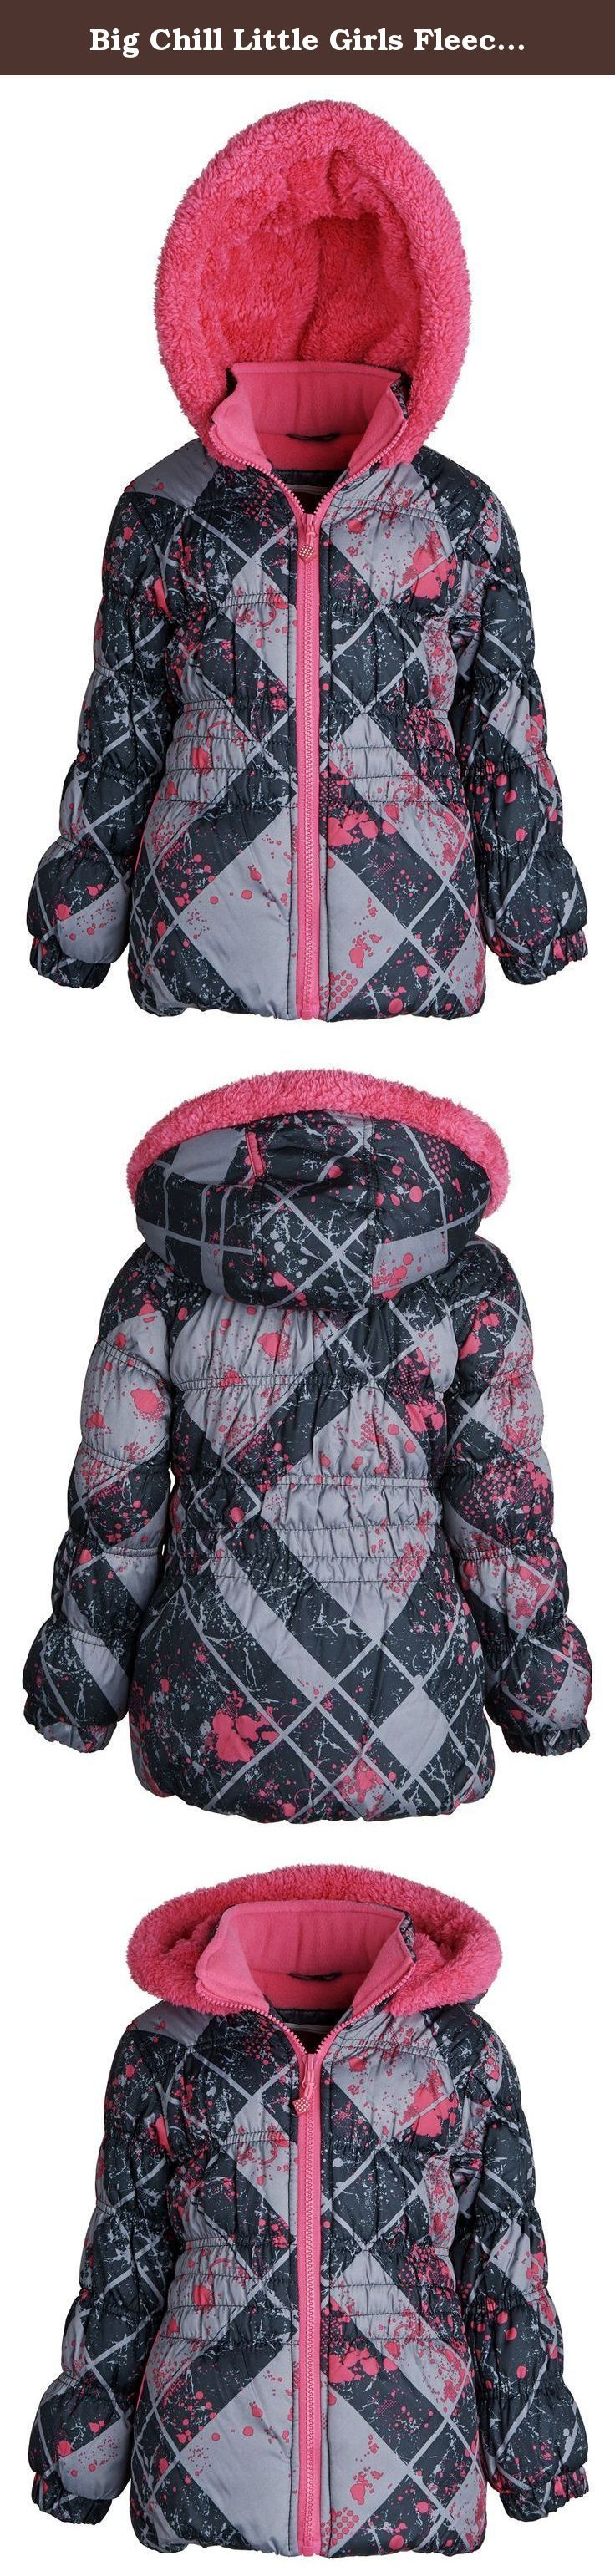 Big Chill Little Girls Fleece Lined Down Alternative Puffer Bubble Winter Jacket - Black (Size 4). Plush and puffy, this bubble coat by Big Chill comes to be first-rate in winter wear. Its thick filling, lined with wintry fleece, will lock out every spore of frigidness. Its bold colored print is appealing and tasty. Insulation and warmth are added by elasticized cuffs and ultra thick faux fur in the hood. Available in colors Black, White, and Navy in sizes 2 to 6X (for other size ranges...